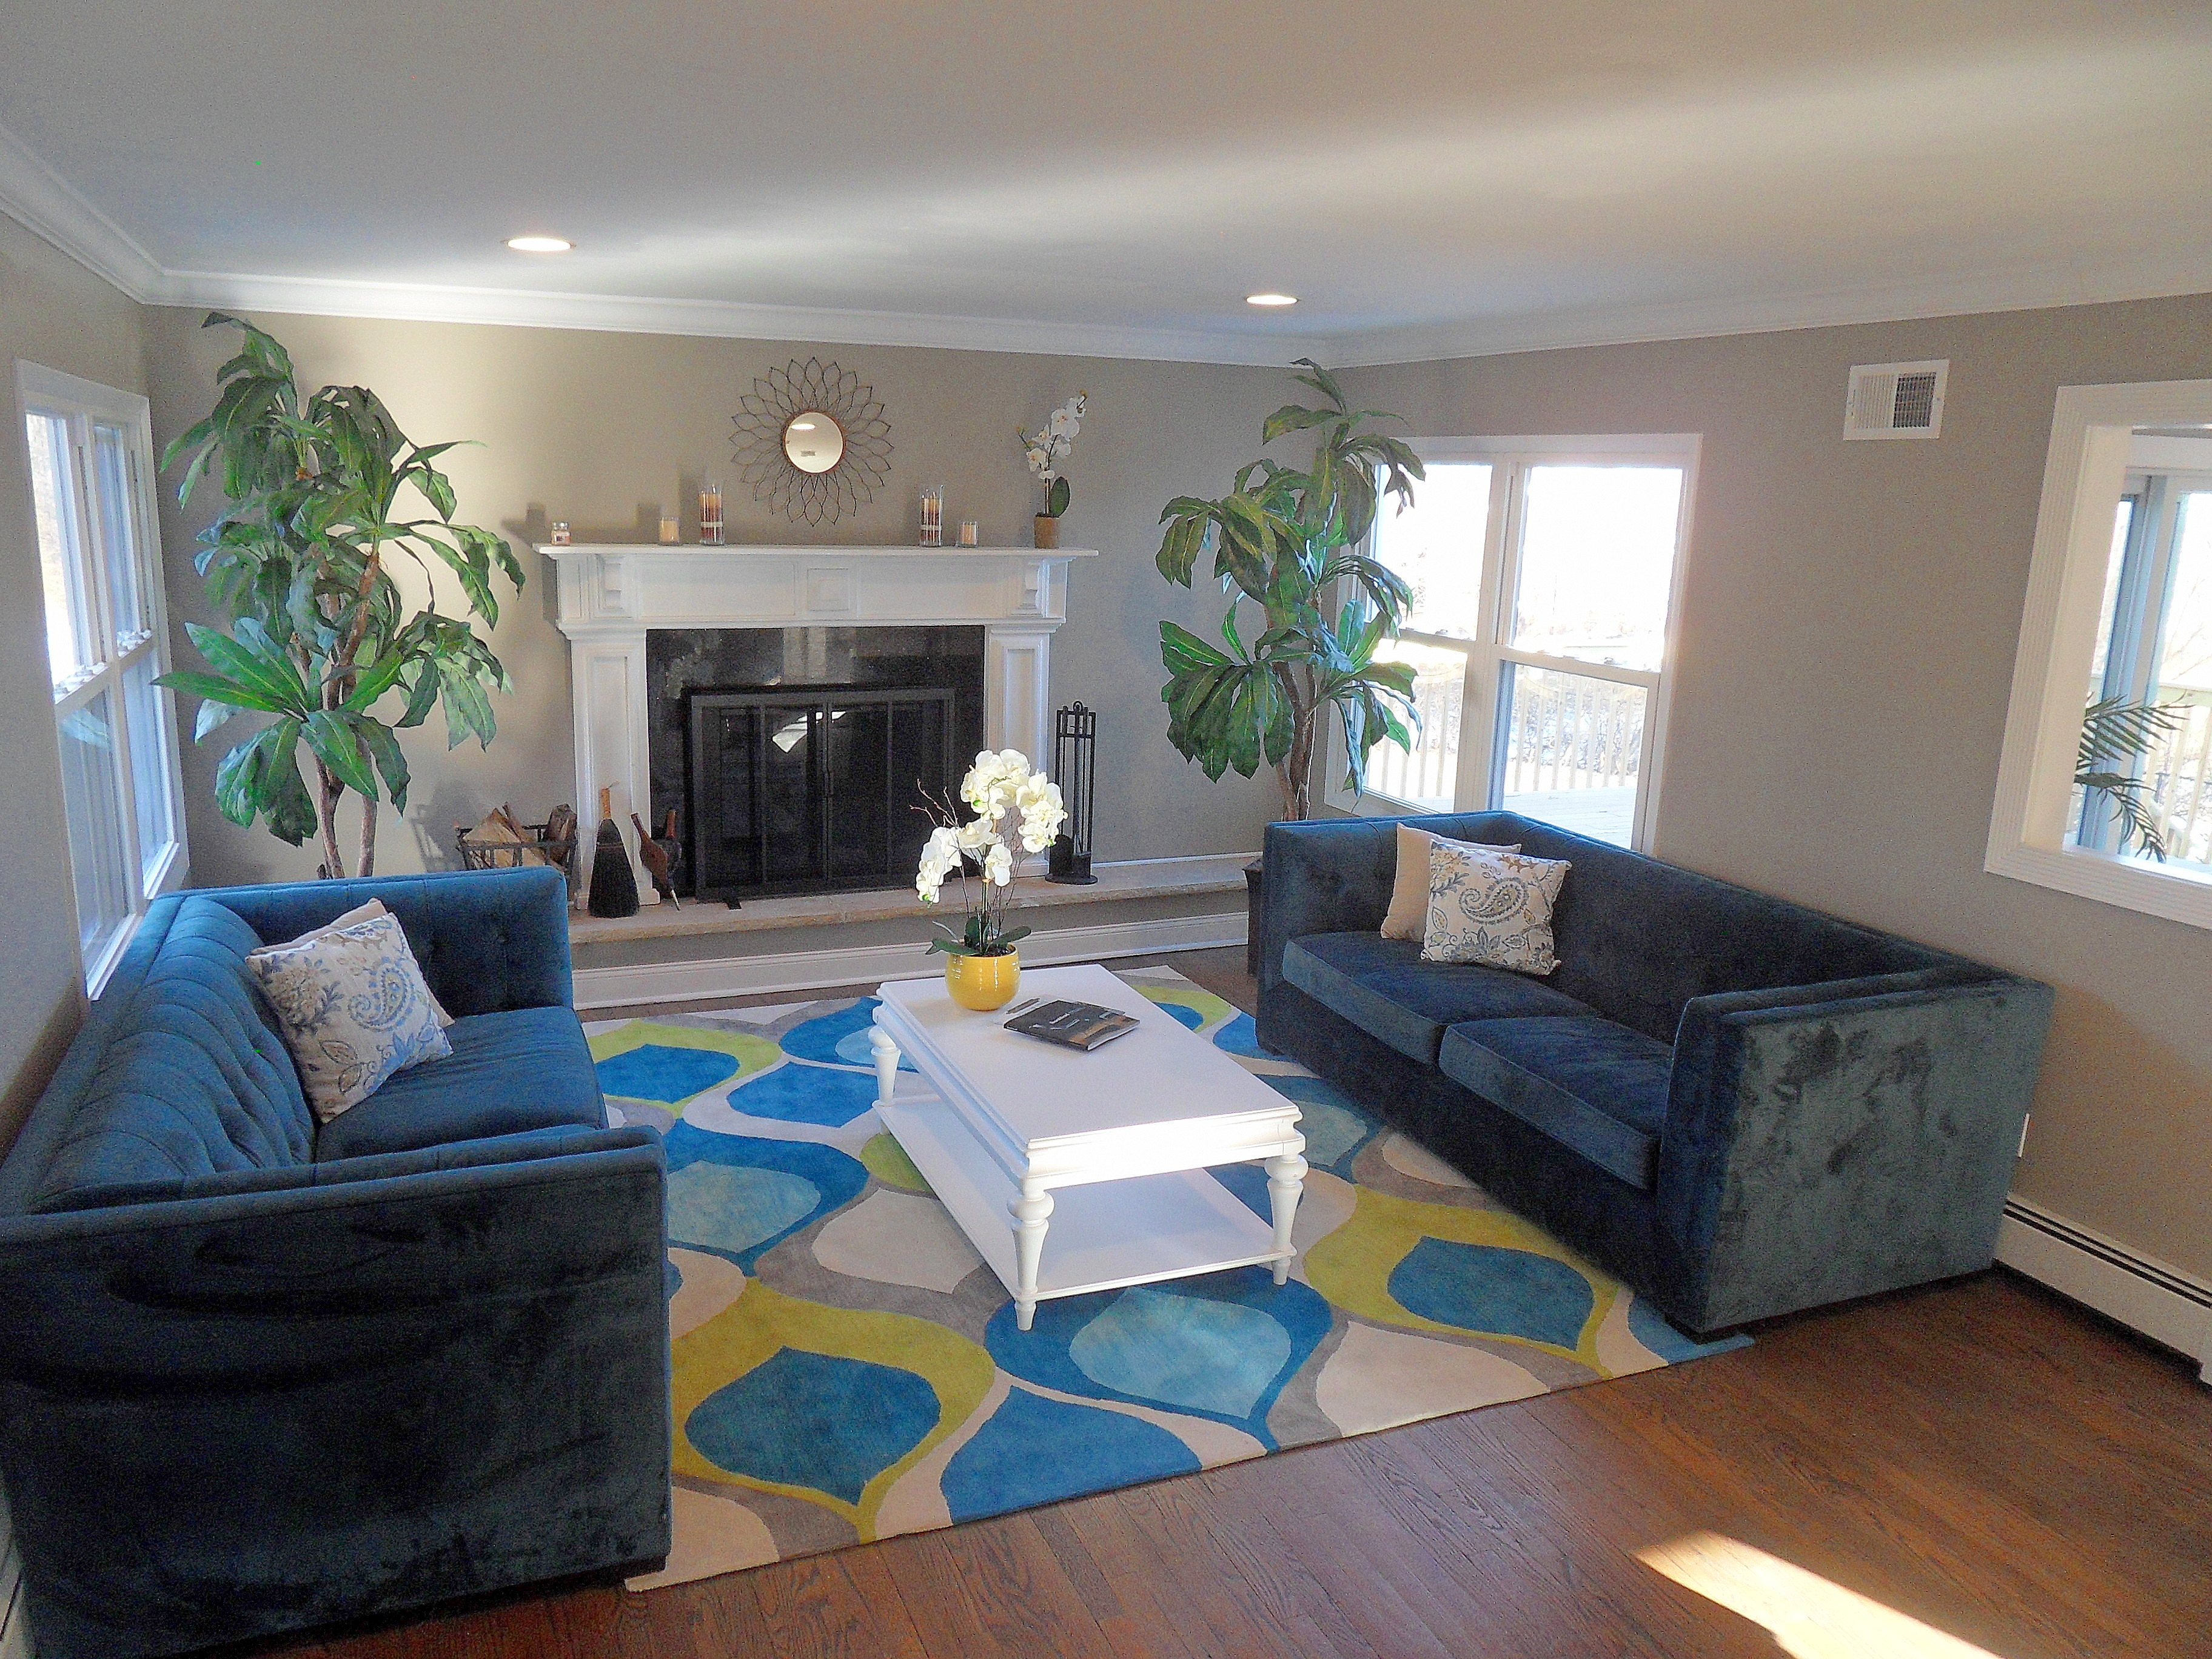 Living room completed by Kates Home Staging in Goshen, New York